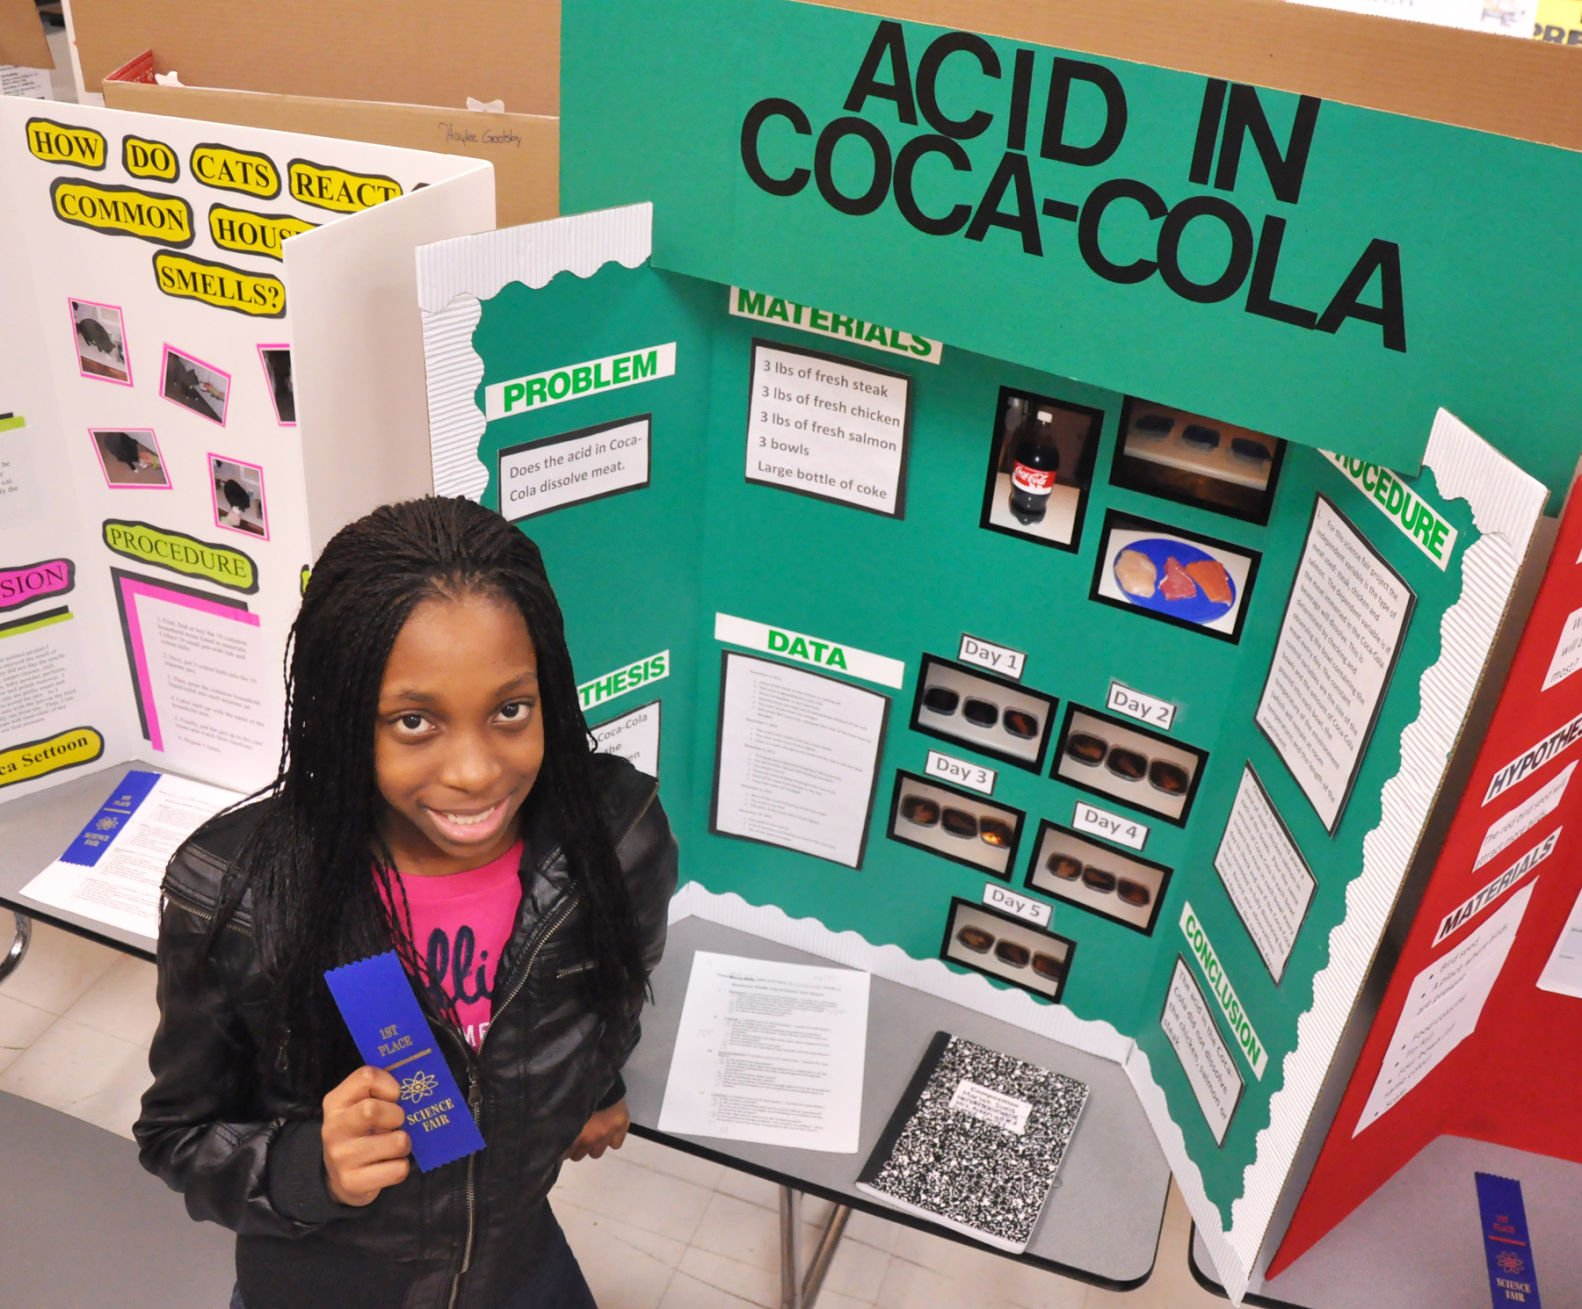 6th Grade Science Fair Projects That Will Win on Ideas For 5th Grade Winning Science Fair Projects